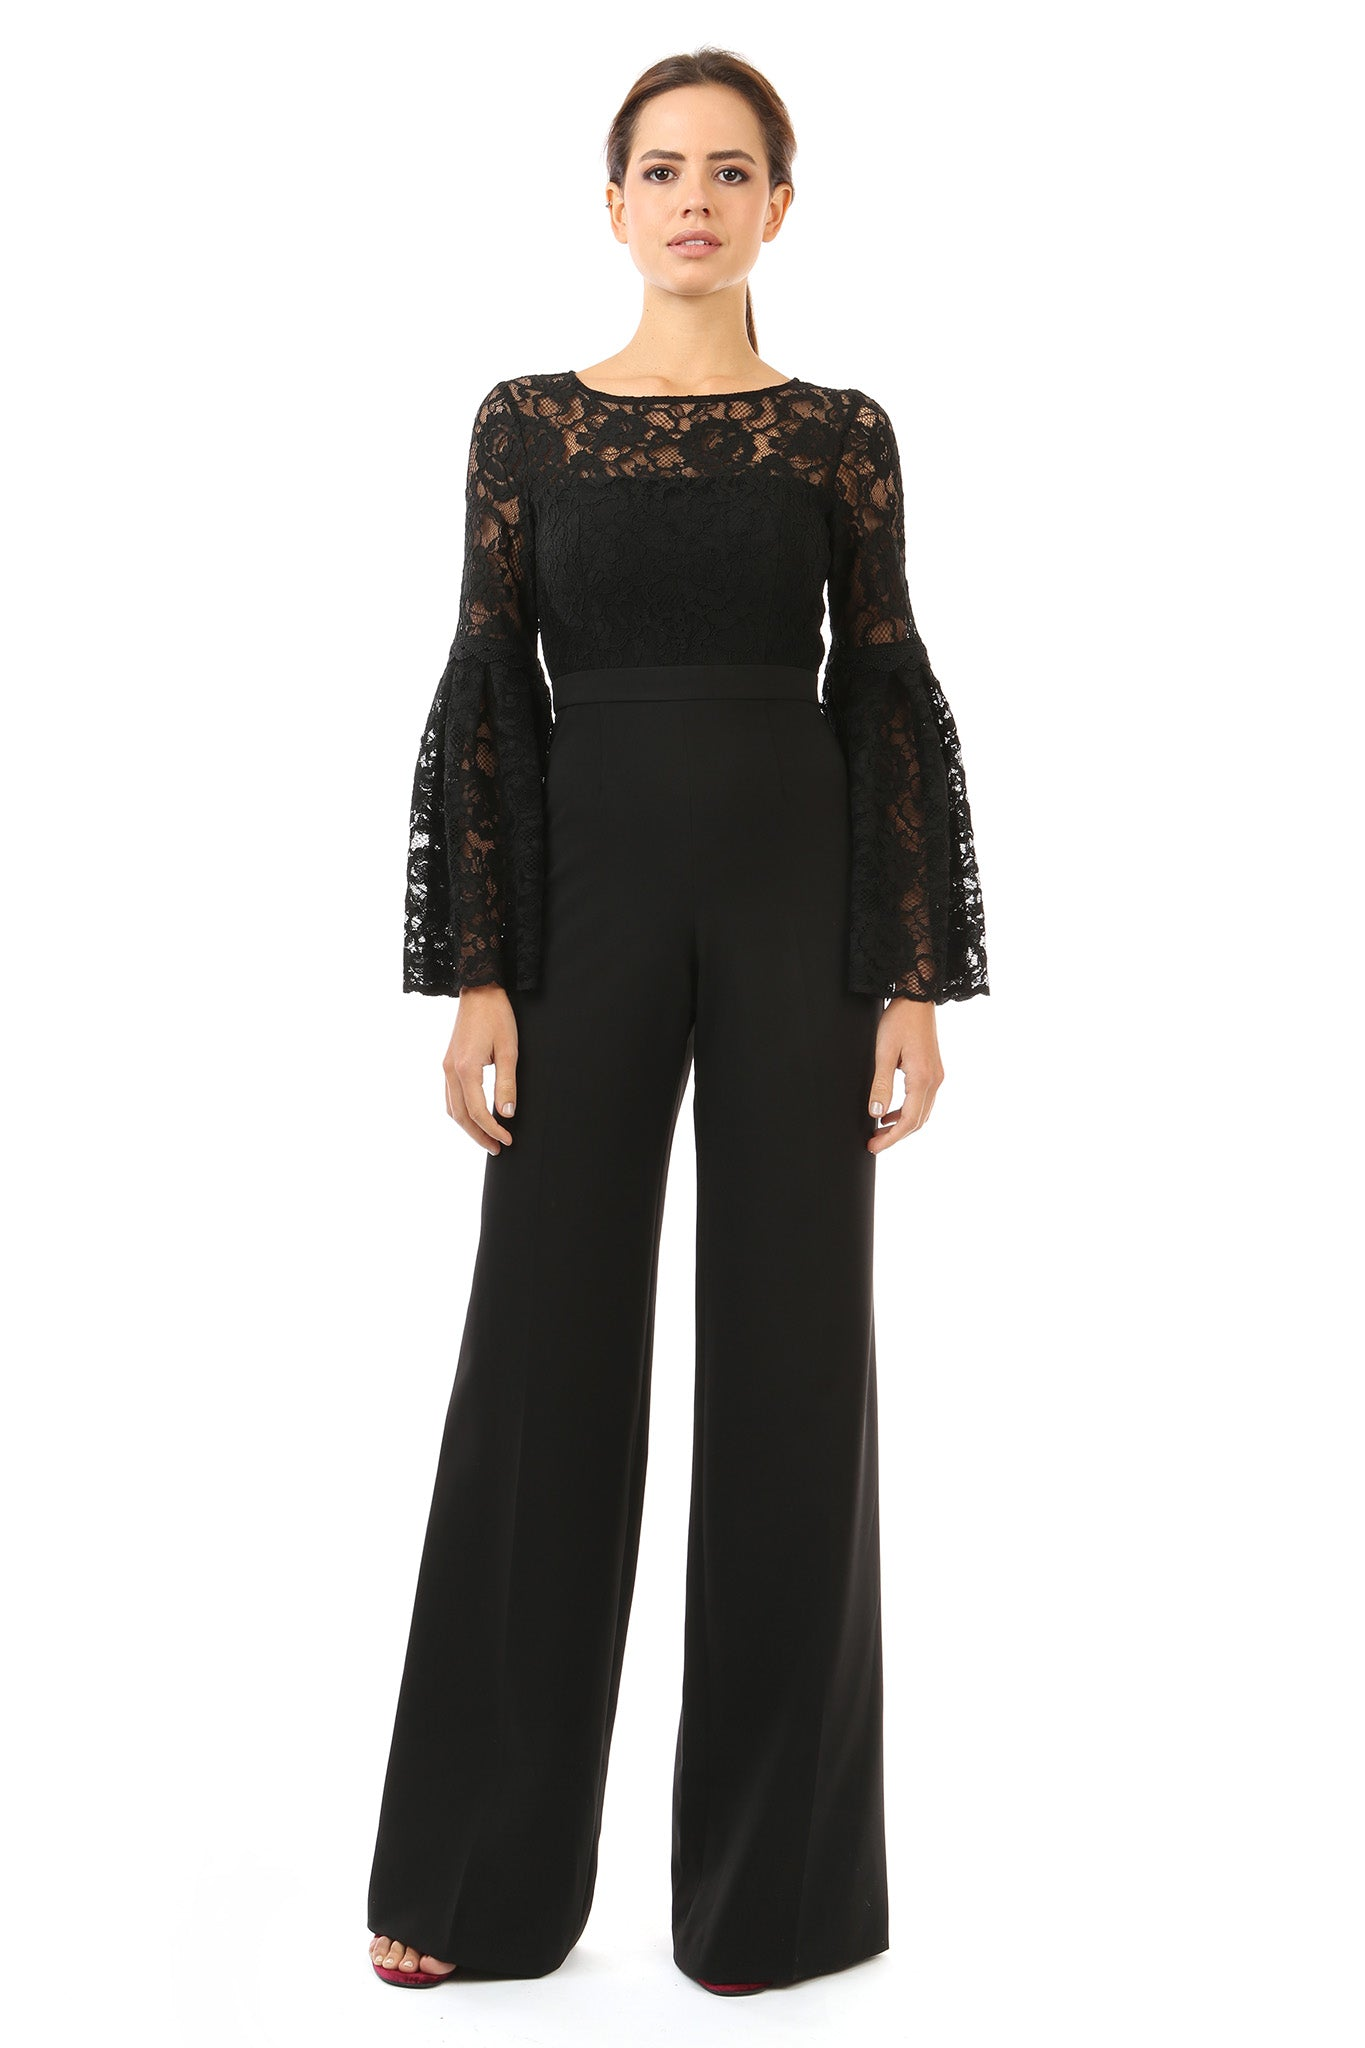 Jay Godfrey Lace Jumpsuit - Front View